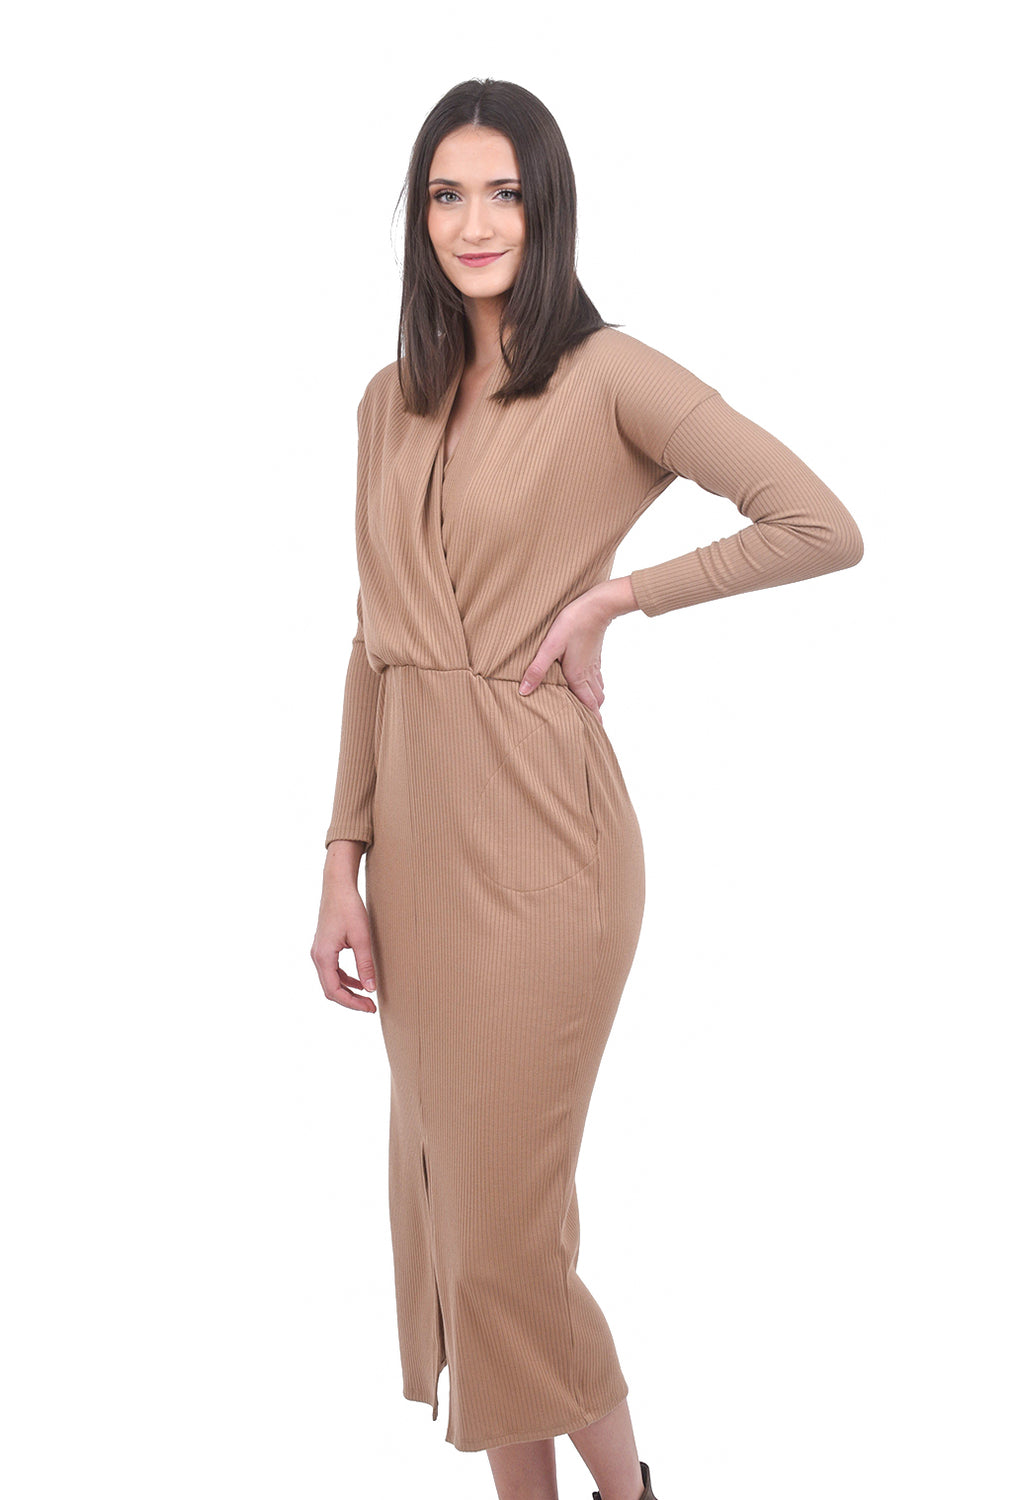 Sarah Liller Lana Dress, Camel